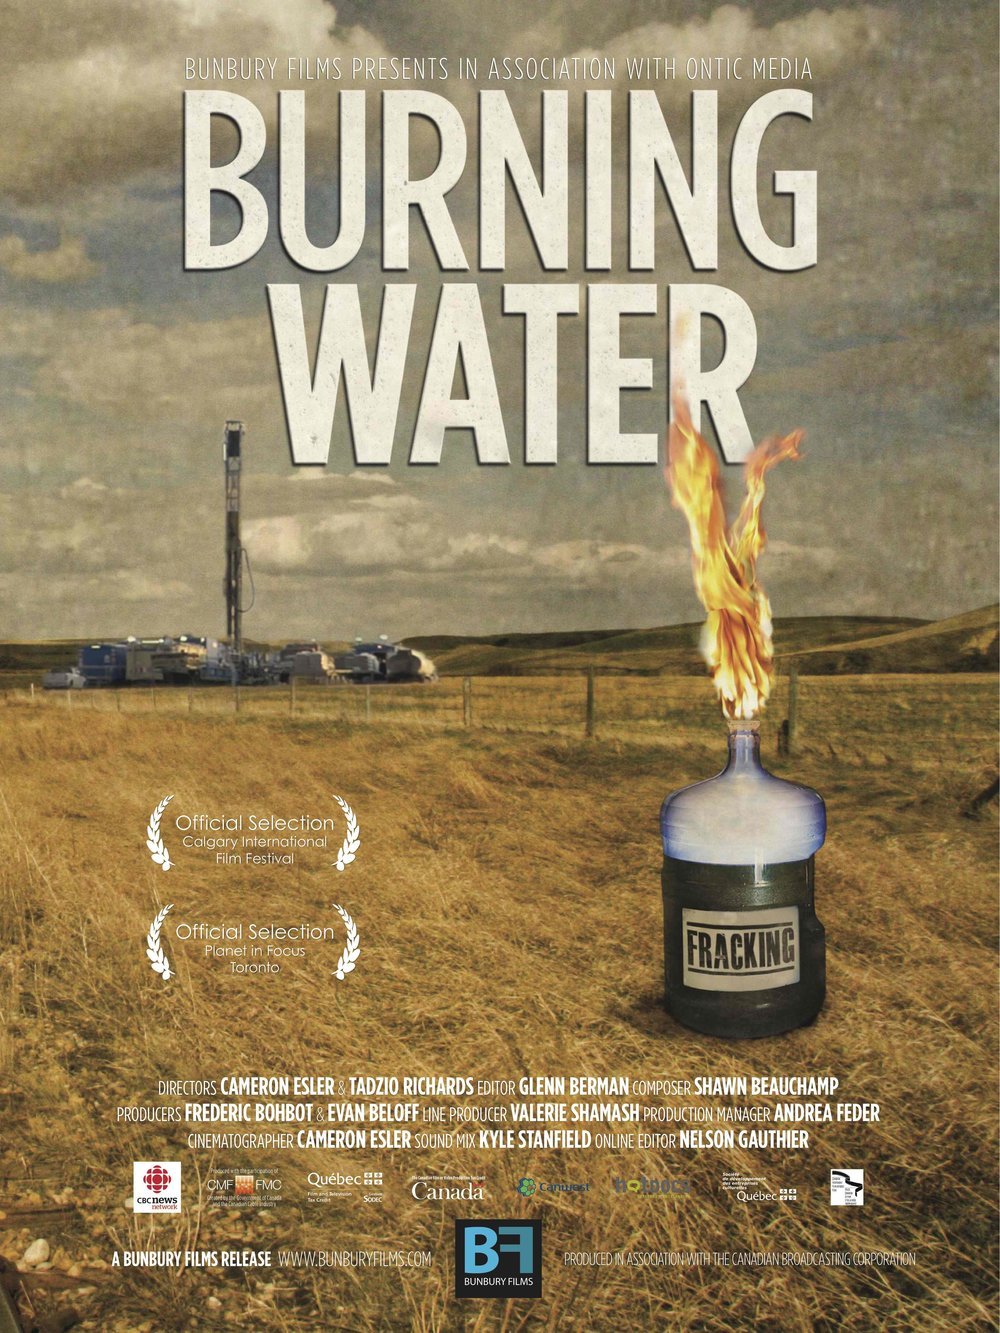 Poster-BurningWater-posters-sept14 JPEG copy.jpg